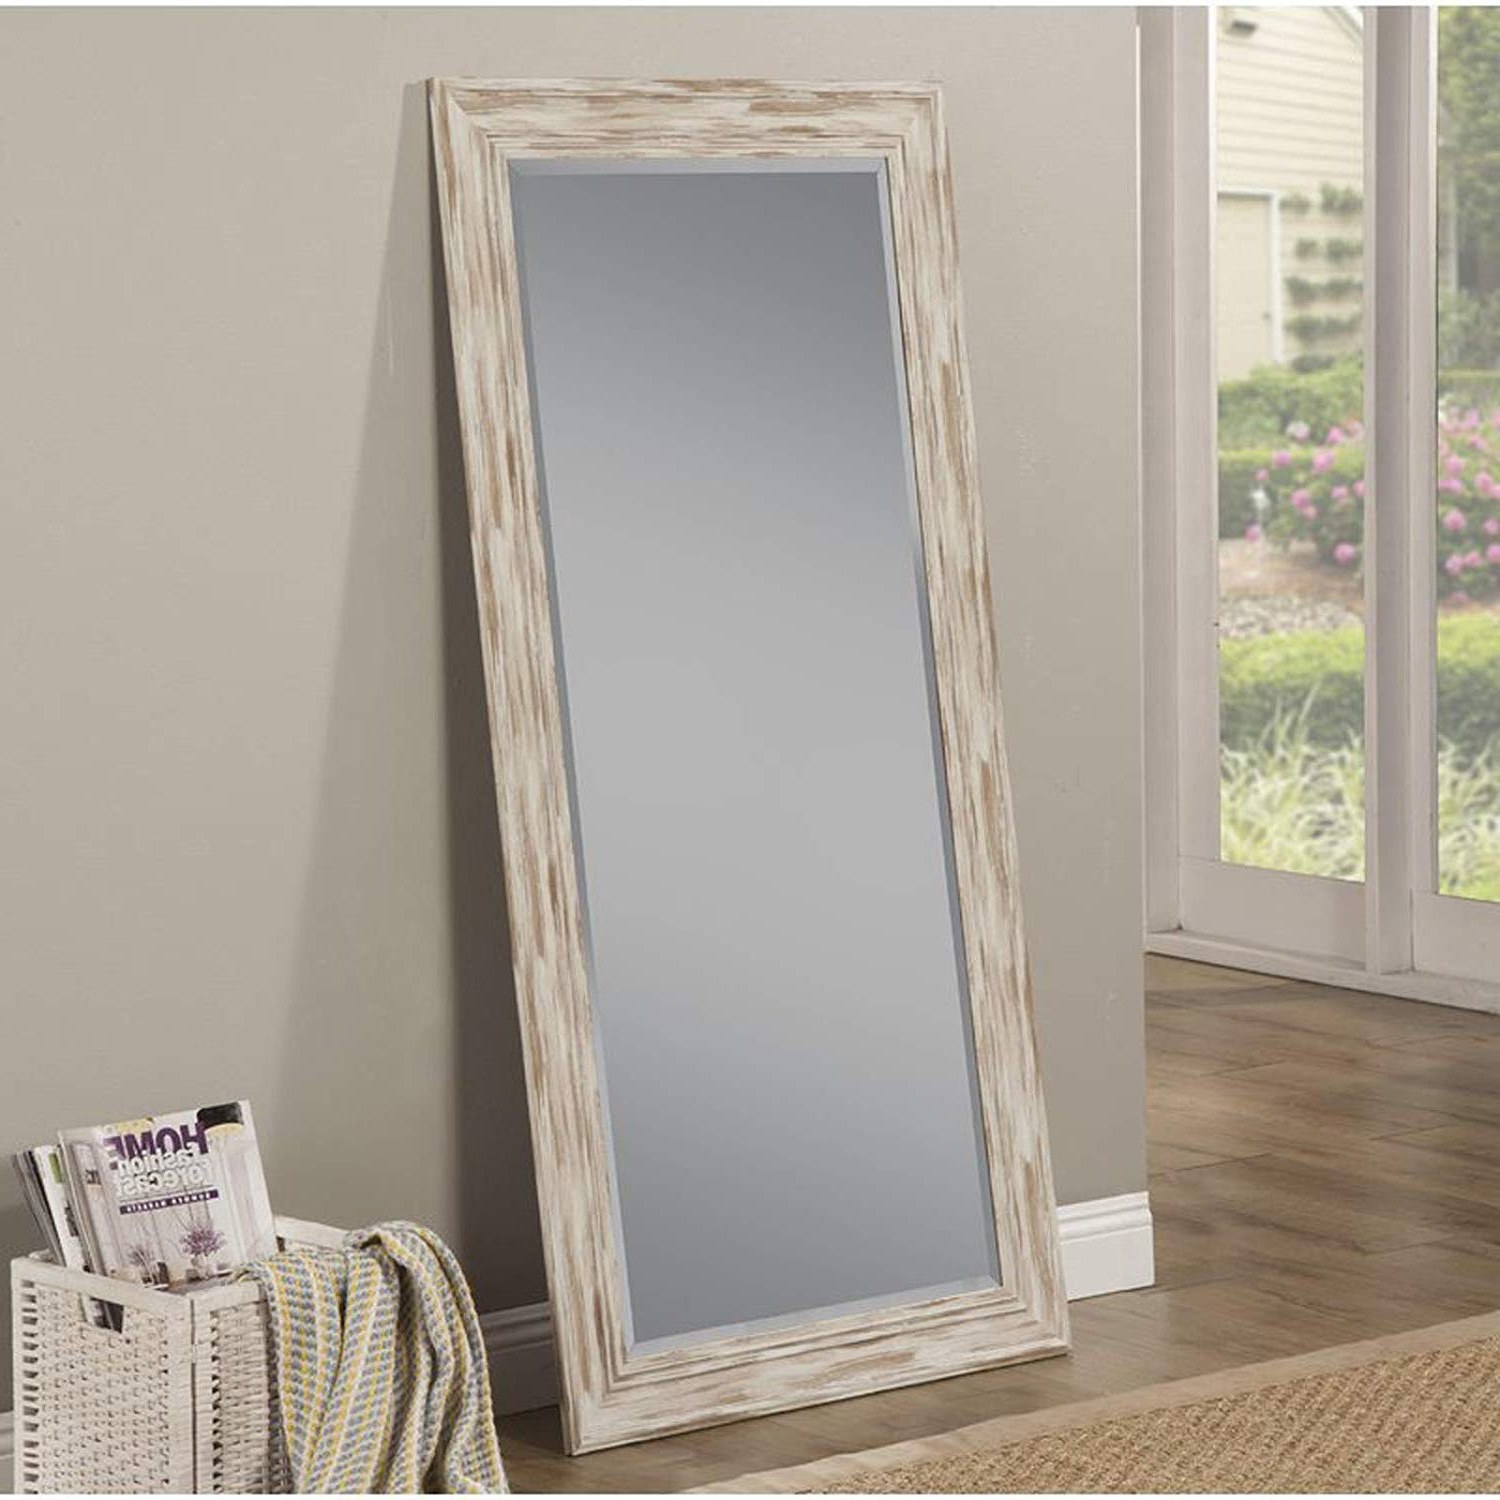 Newest Full Length White Wall Mirrors Within Full Length Wall Mirror – Rustic Rectangular Shape Horizontal & Vertical  Mirror – Can Be Use In Living Room, Bedroom, Entryway Or Bathroom (Antique (View 13 of 20)